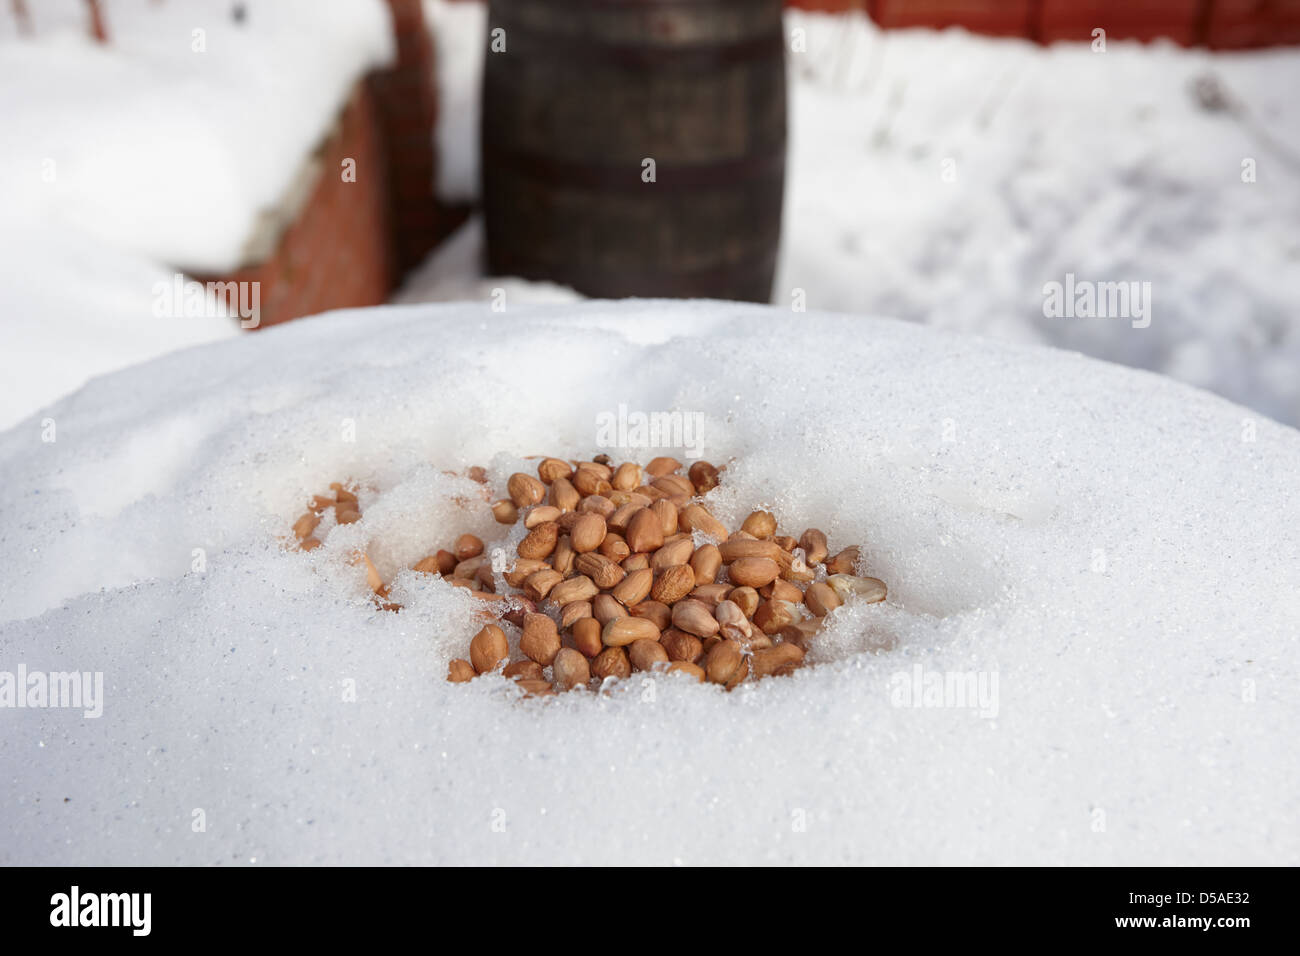 peanuts left out for wild garden birds in heavy snowfall county antrim northern ireland uk - Stock Image